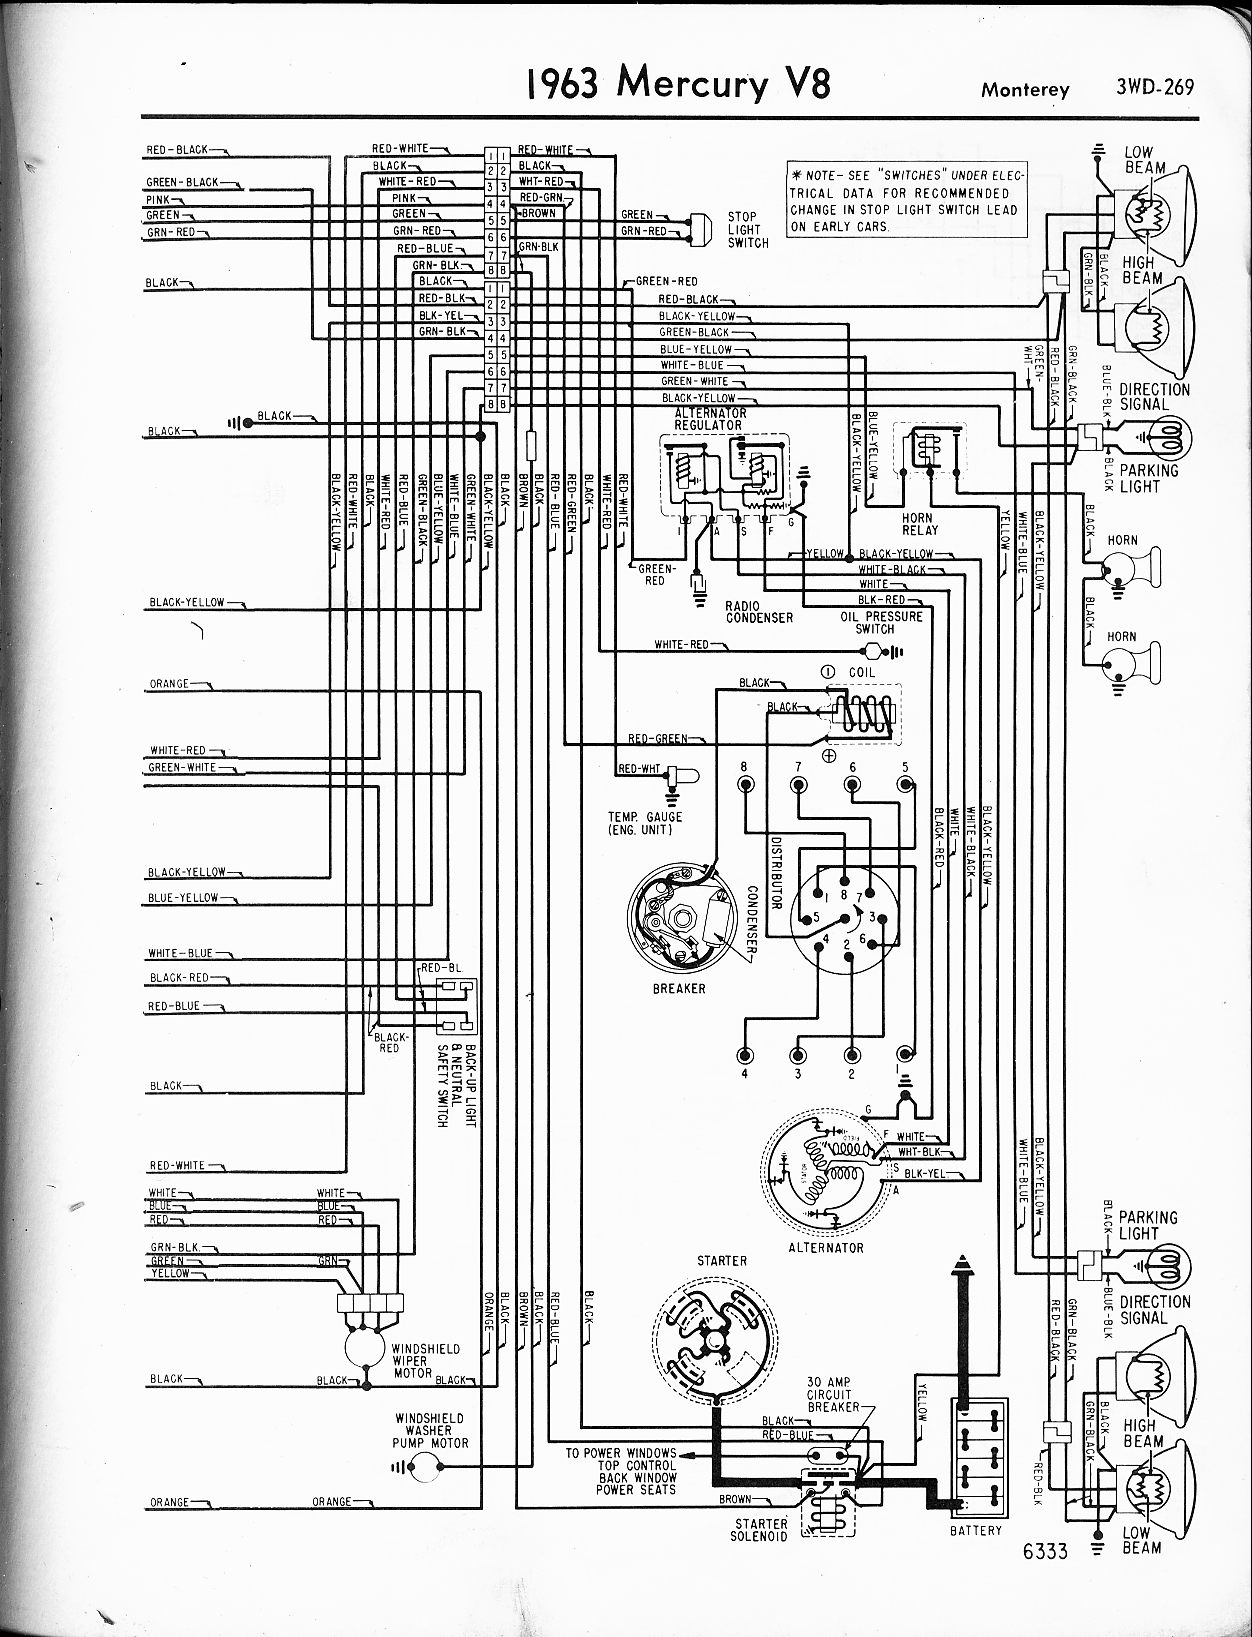 Mercury Wiring Diagrams The Old Car Manual Project 64 Et Diagram 1963 V8 Monterey Right Page